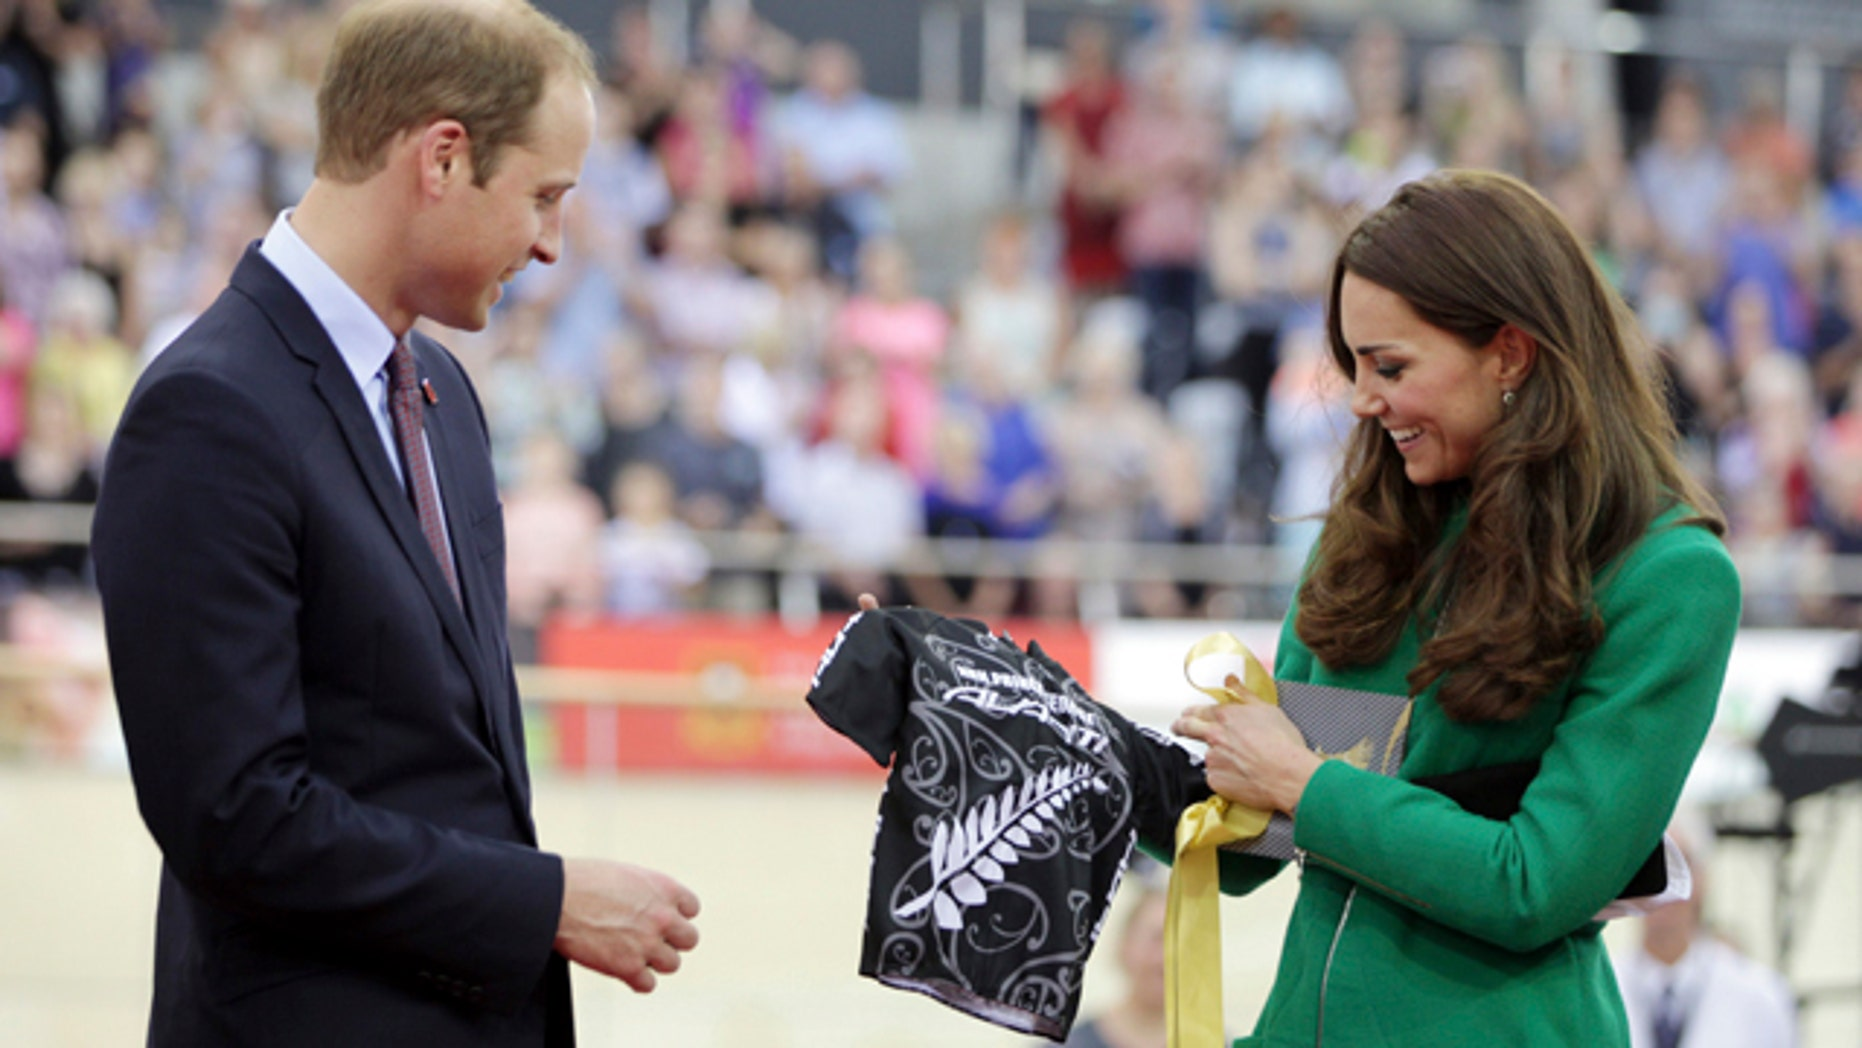 April 12, 2014: Britain's Prince William, left, and Kate, Duchess of Cambridge, look at a cycling shirt presented to them for their son Prince George while attending the opening of the National Cycling Centre in Cambridge, New Zealand. (AP Photo/Peter Drury, Pool)